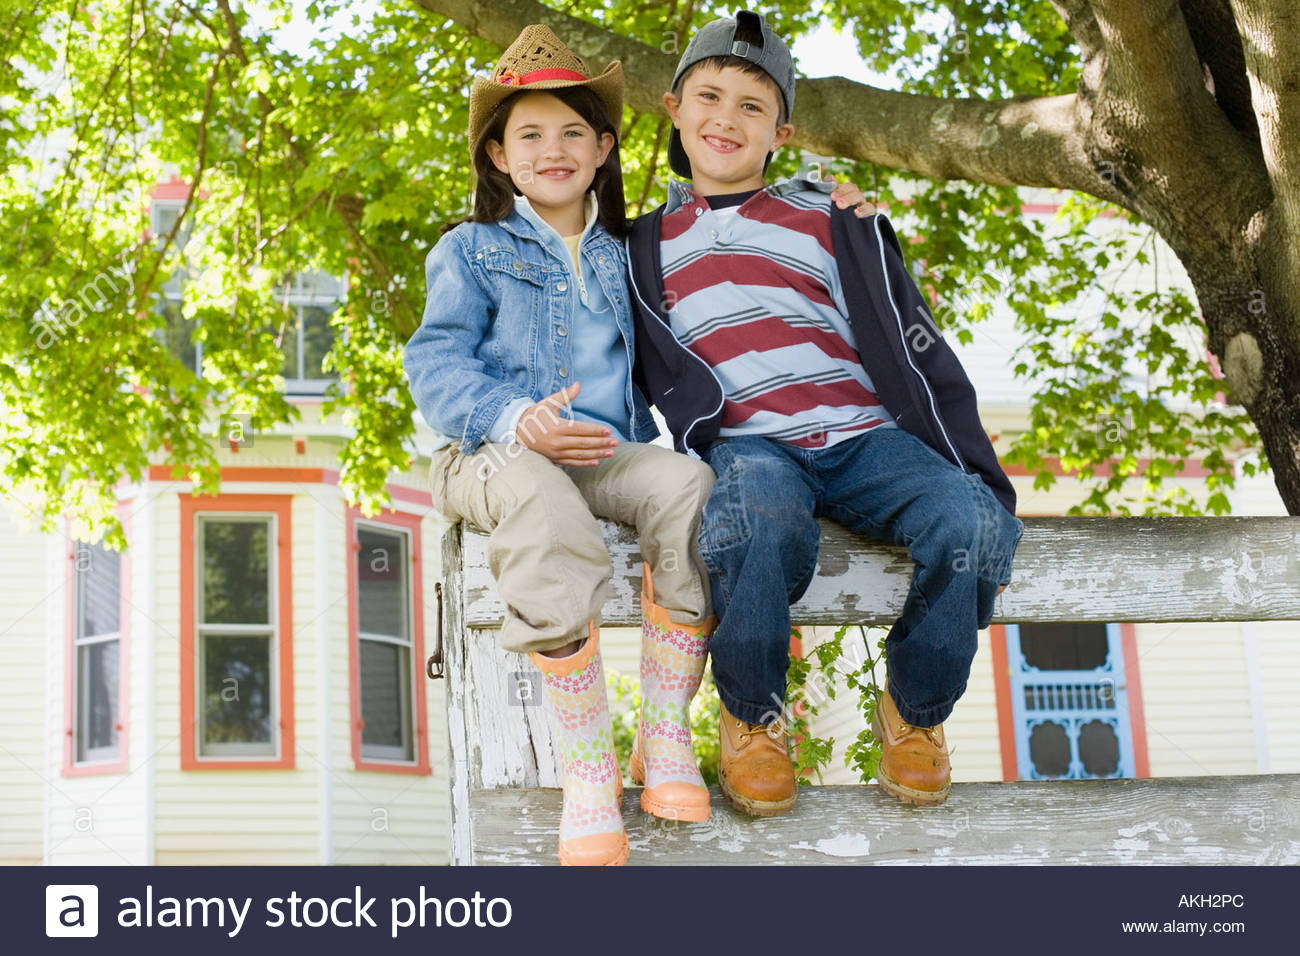 Boy and girl sitting on wooden fence in front of house - Stock Image